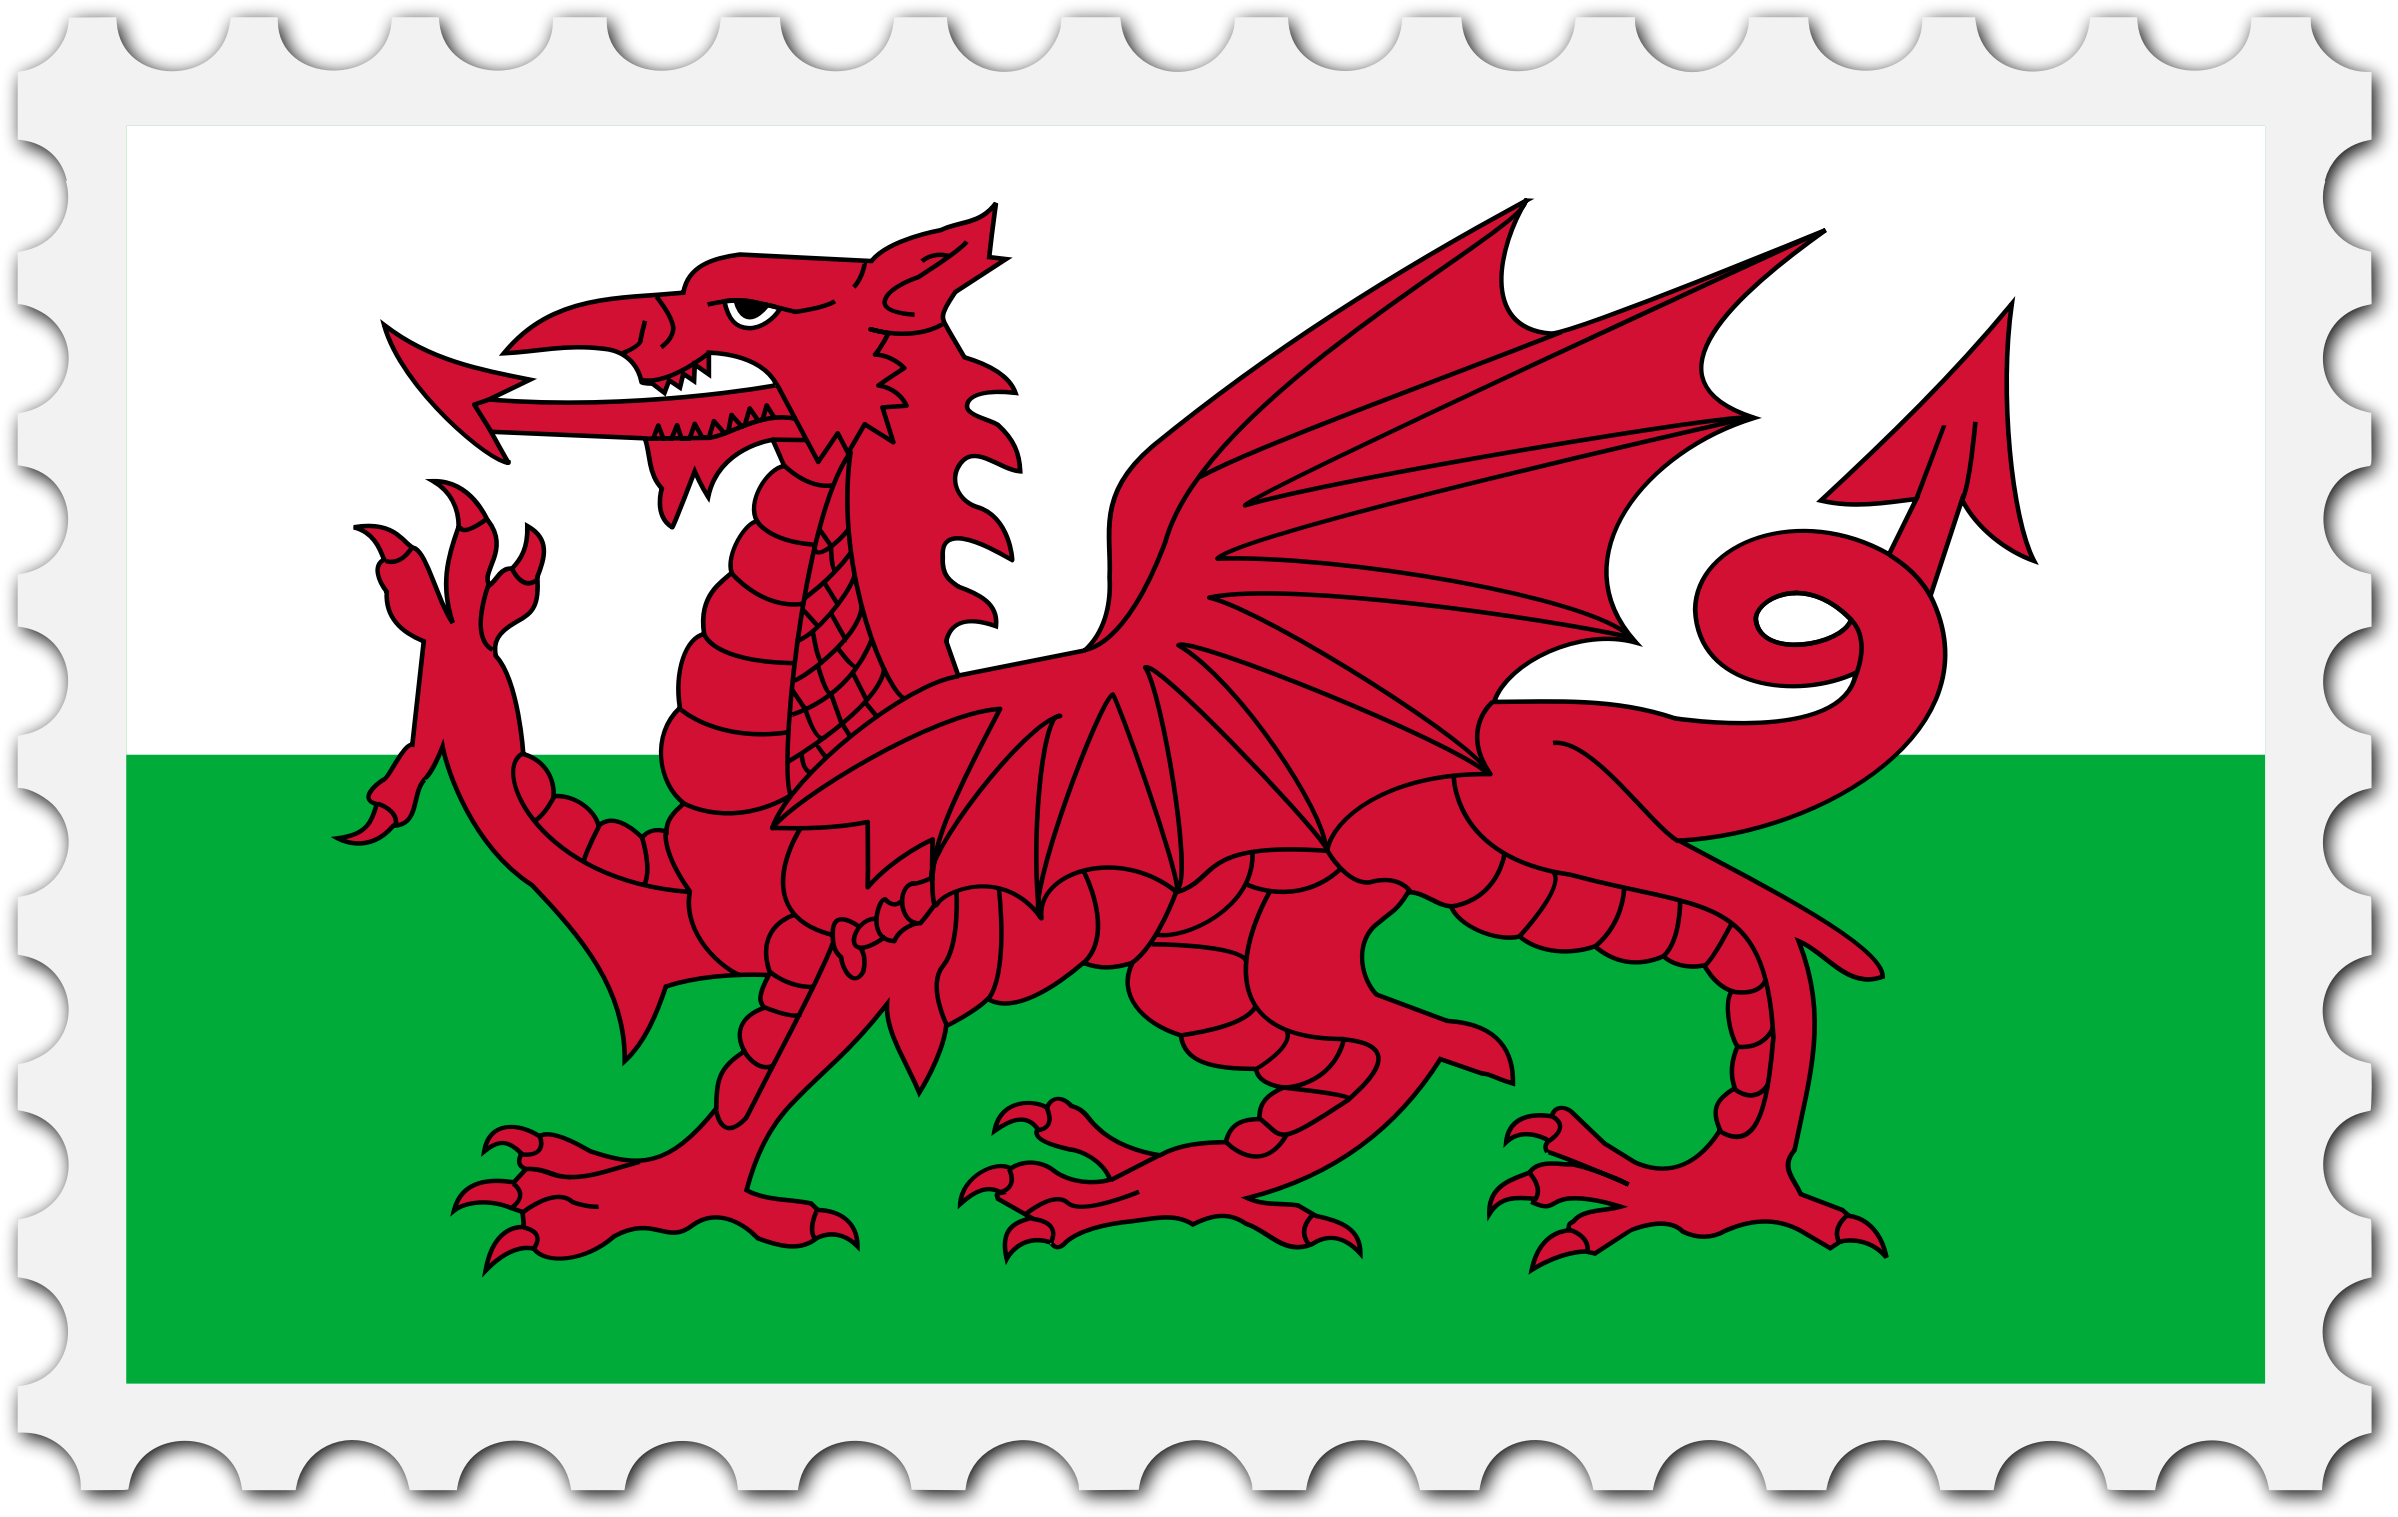 Wales flag stamp by Firkin